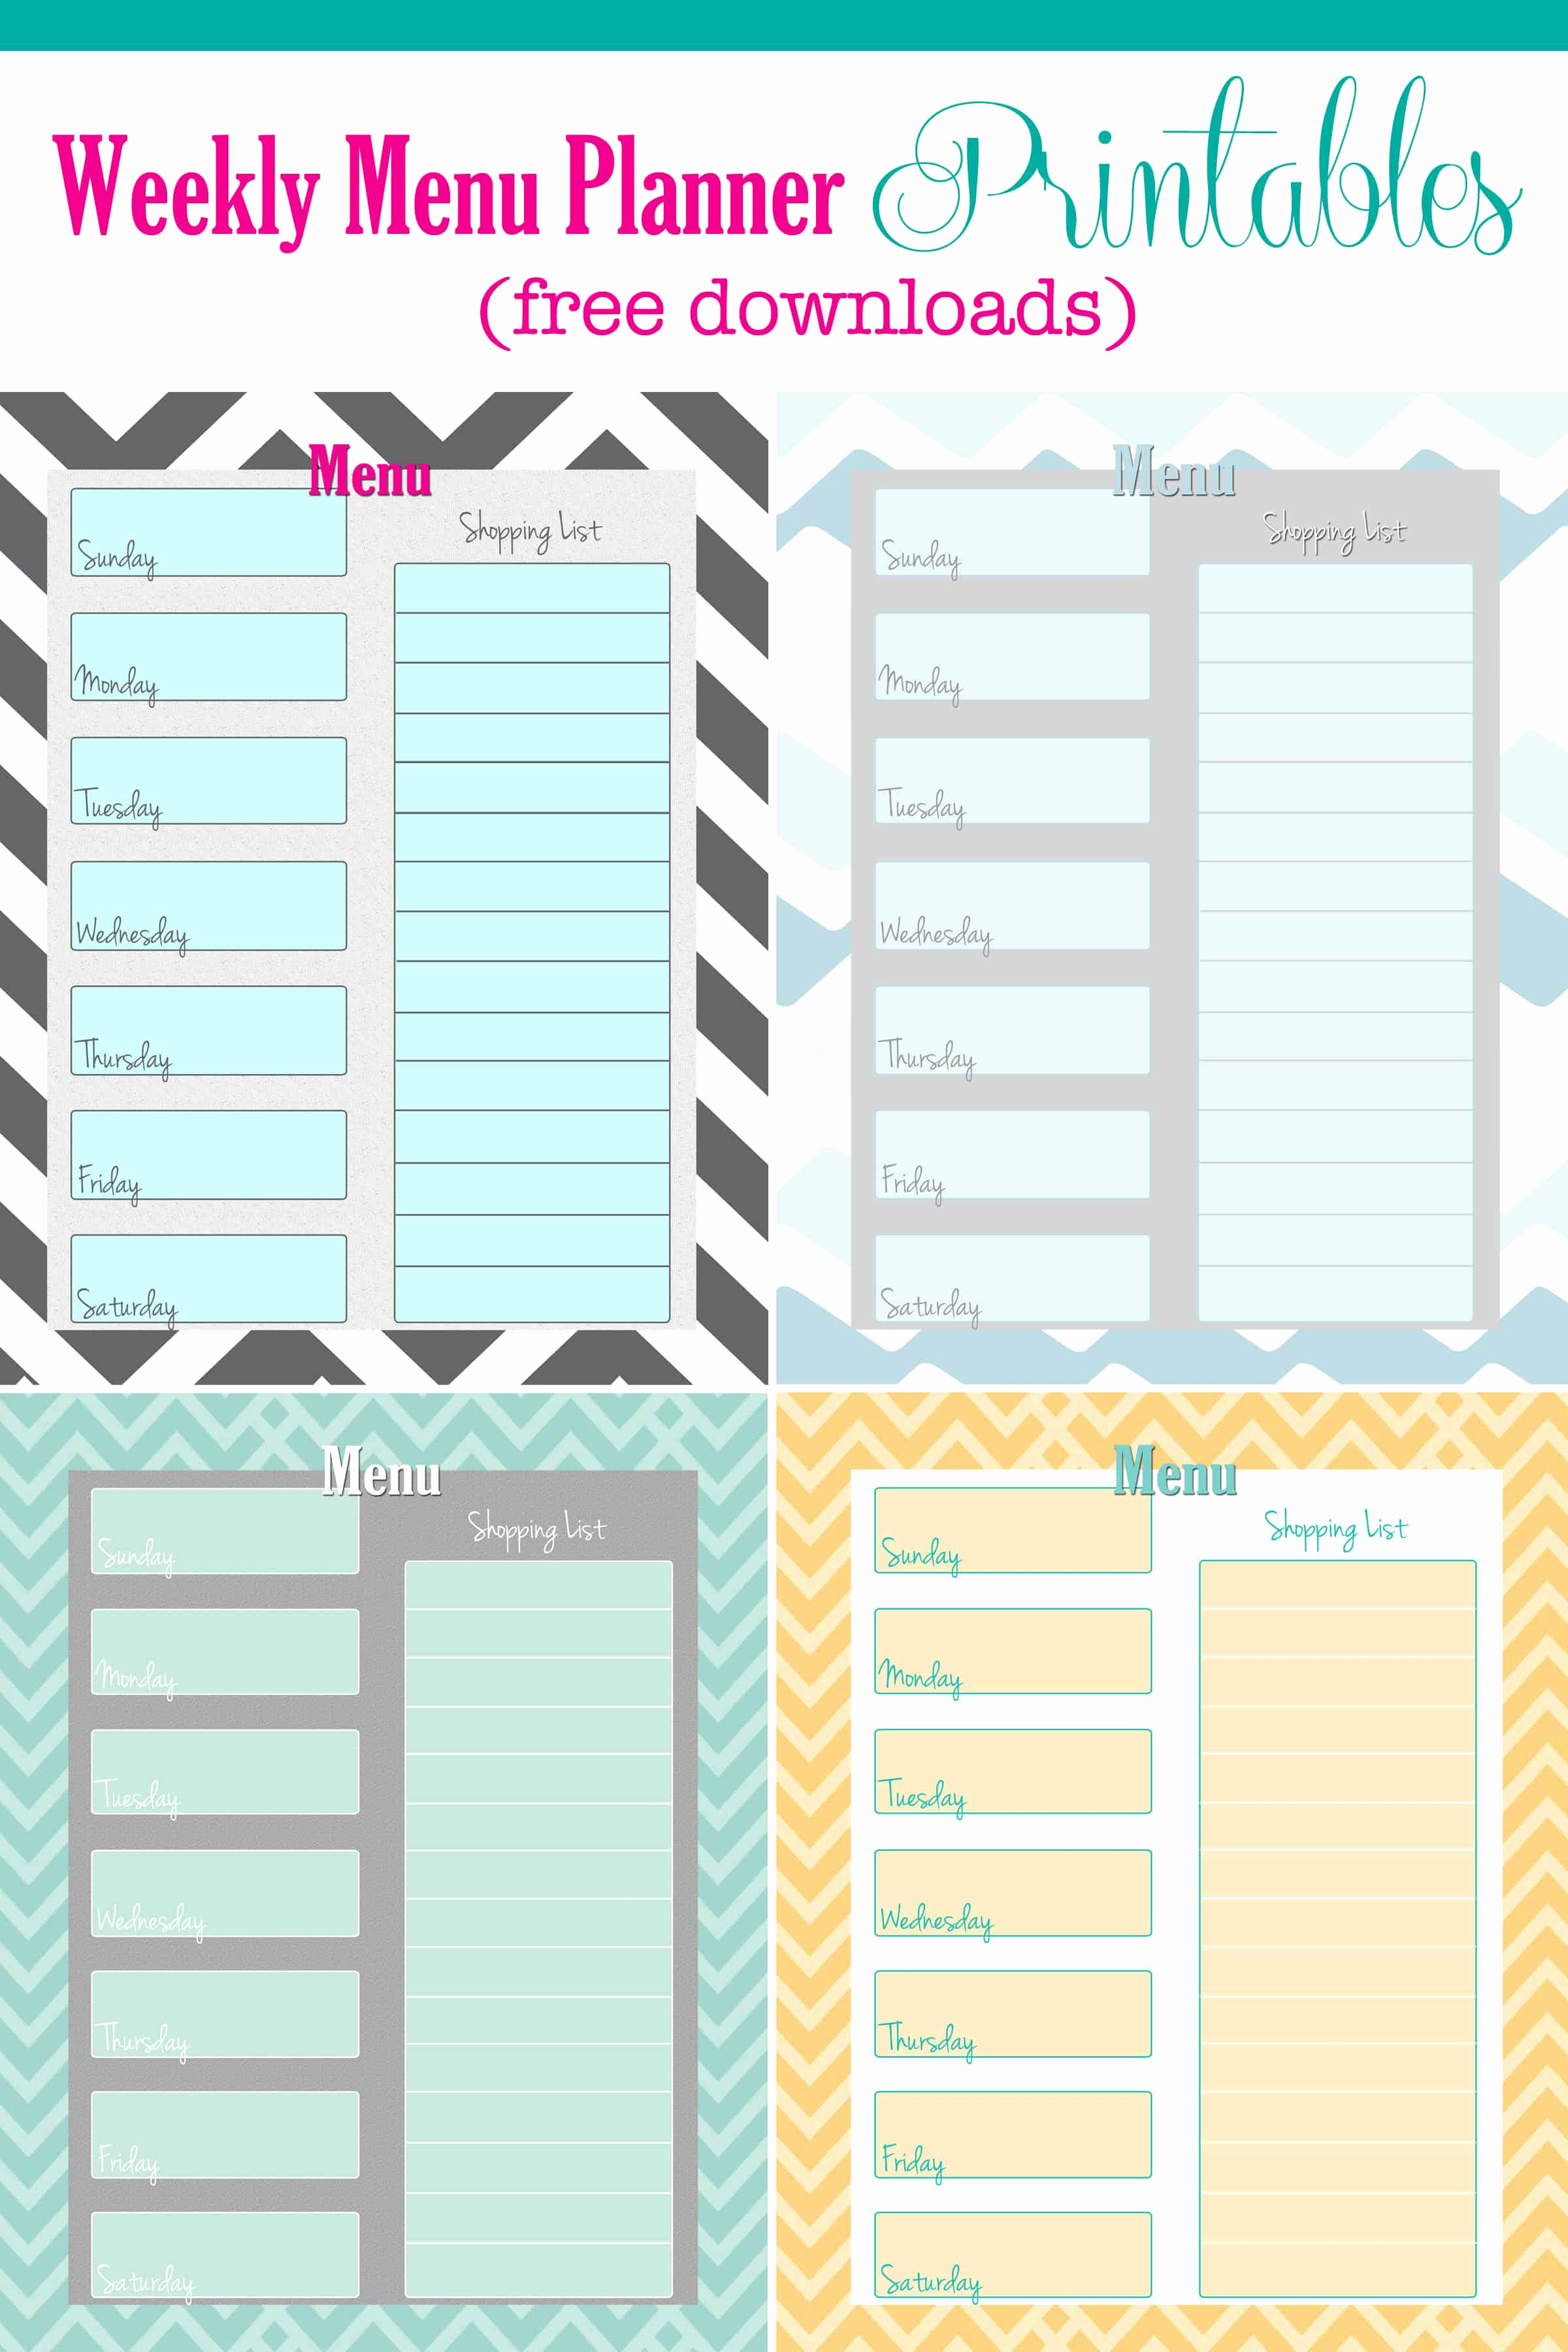 Free Printable Menu Template Luxury Free Weekly Menu Planner Printable 4 Colors Cupcake